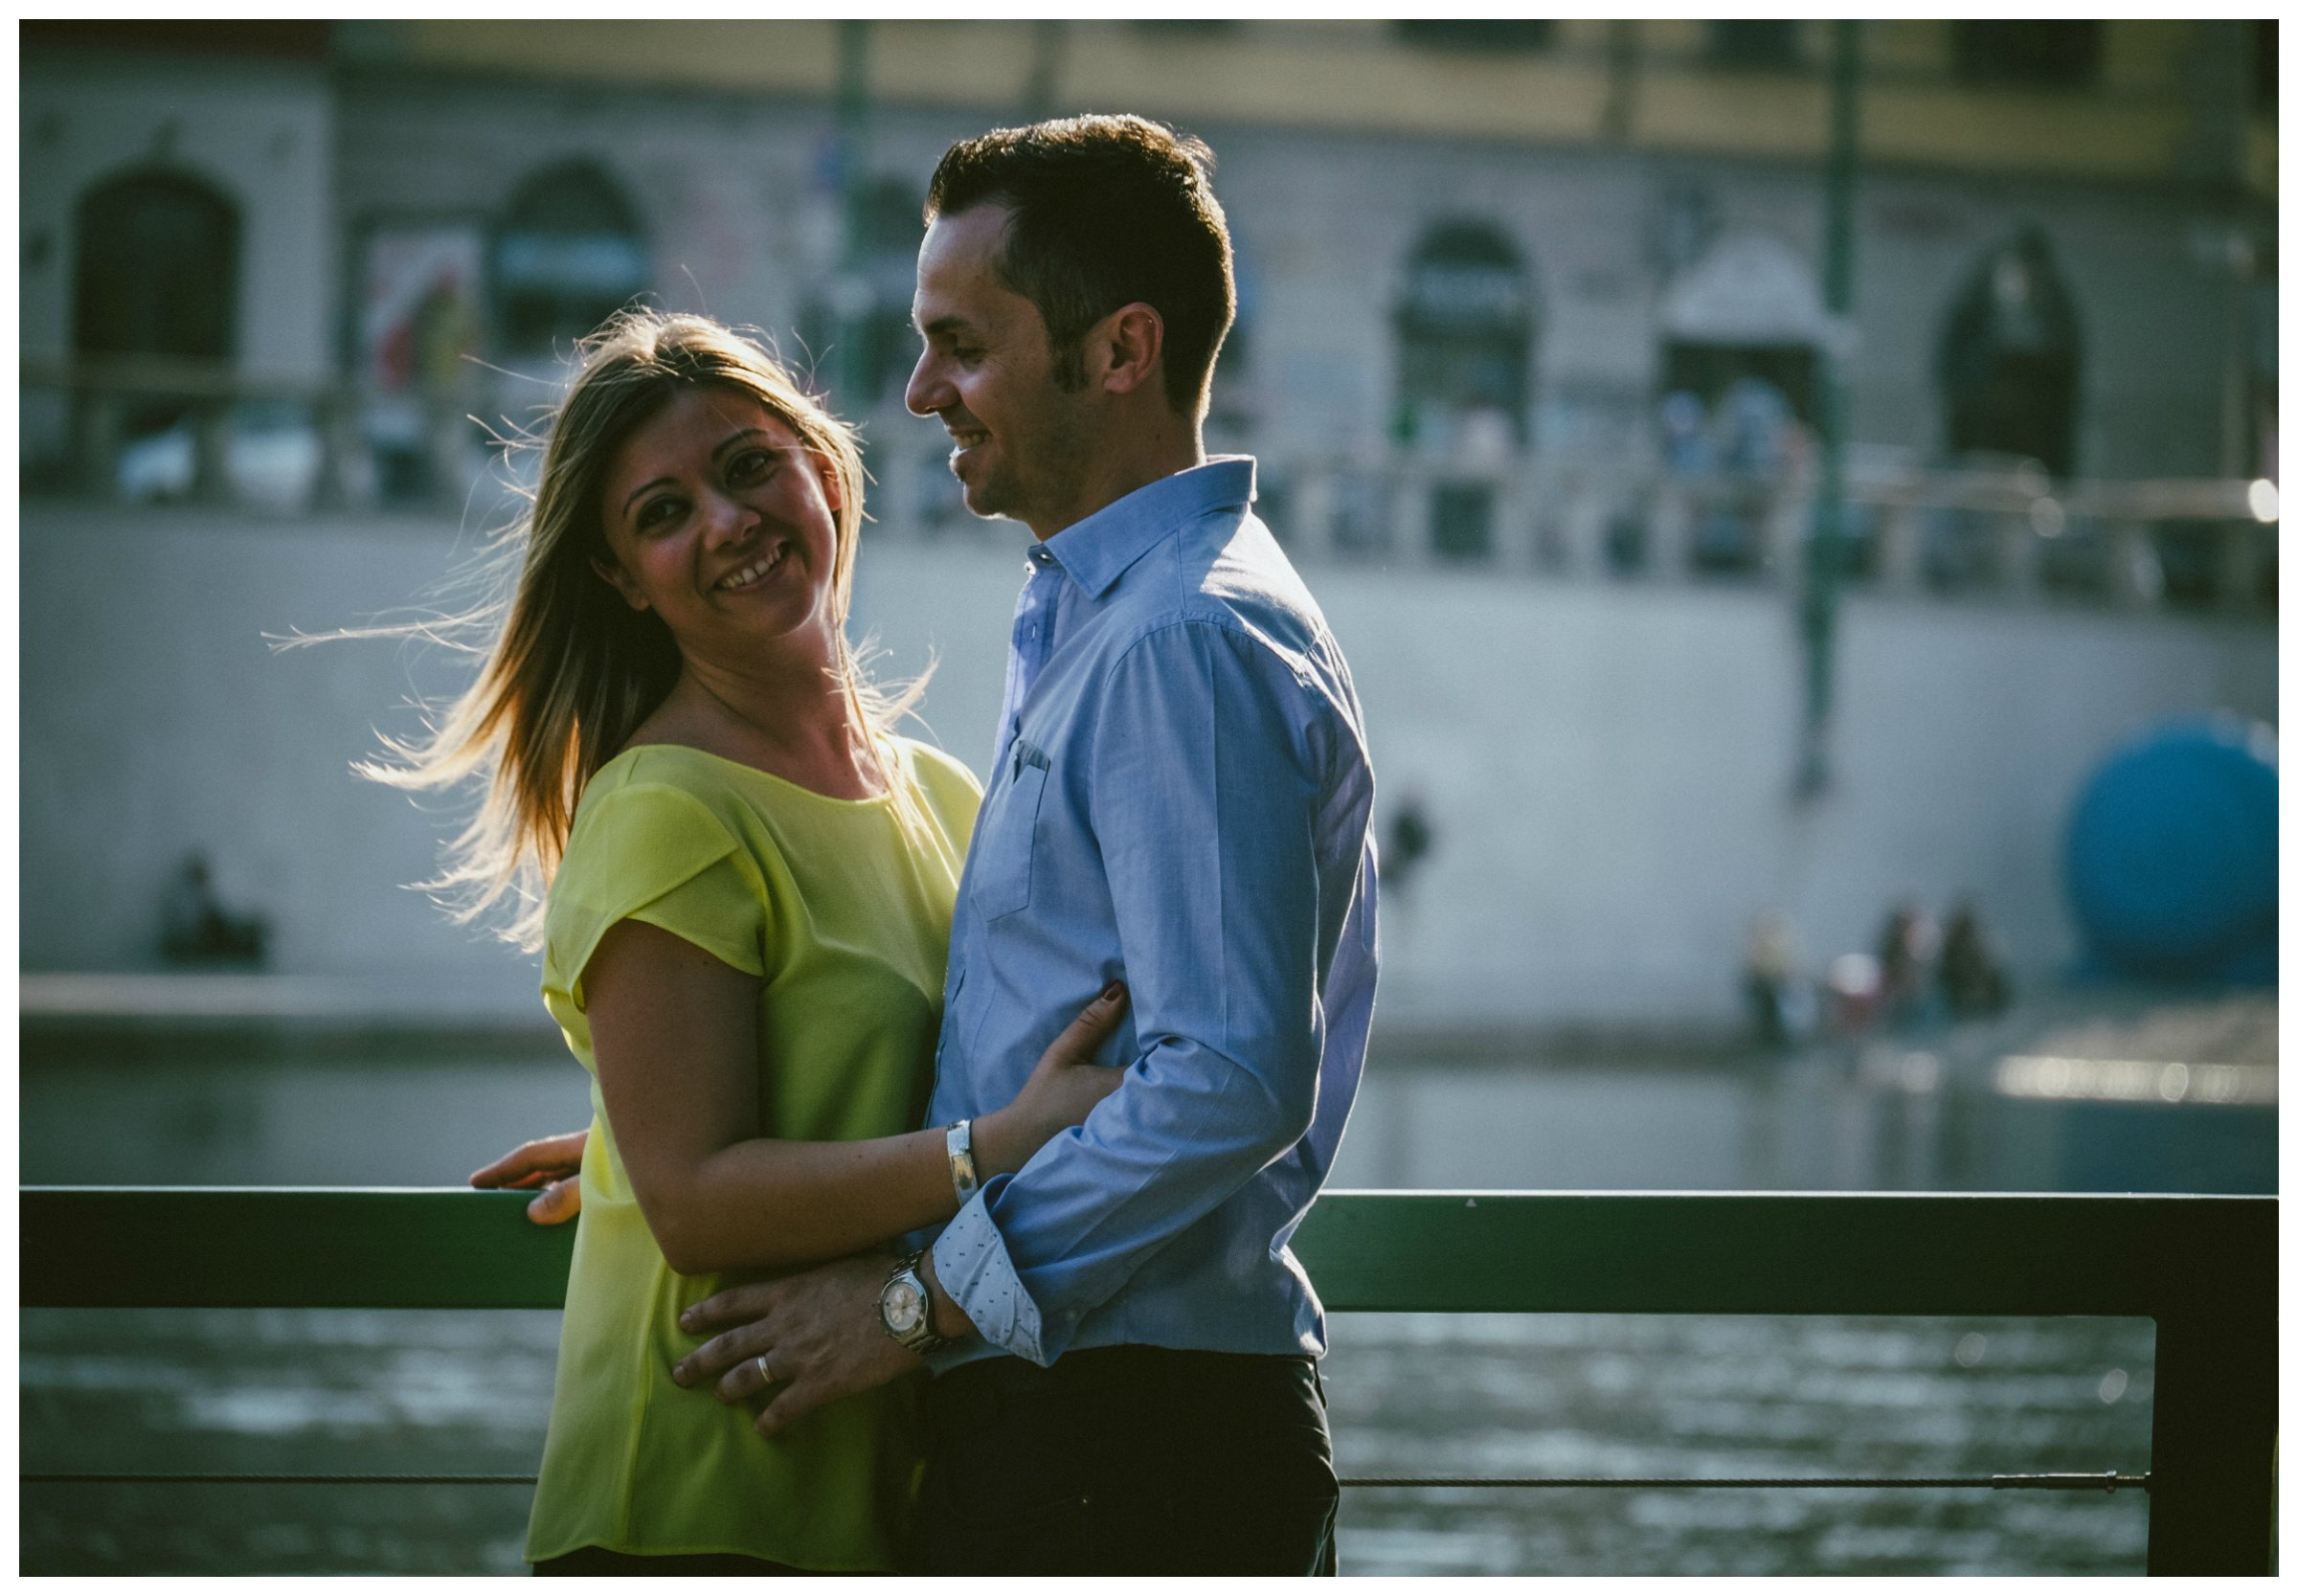 engagement session milano darsena, Marialuisa e Davide